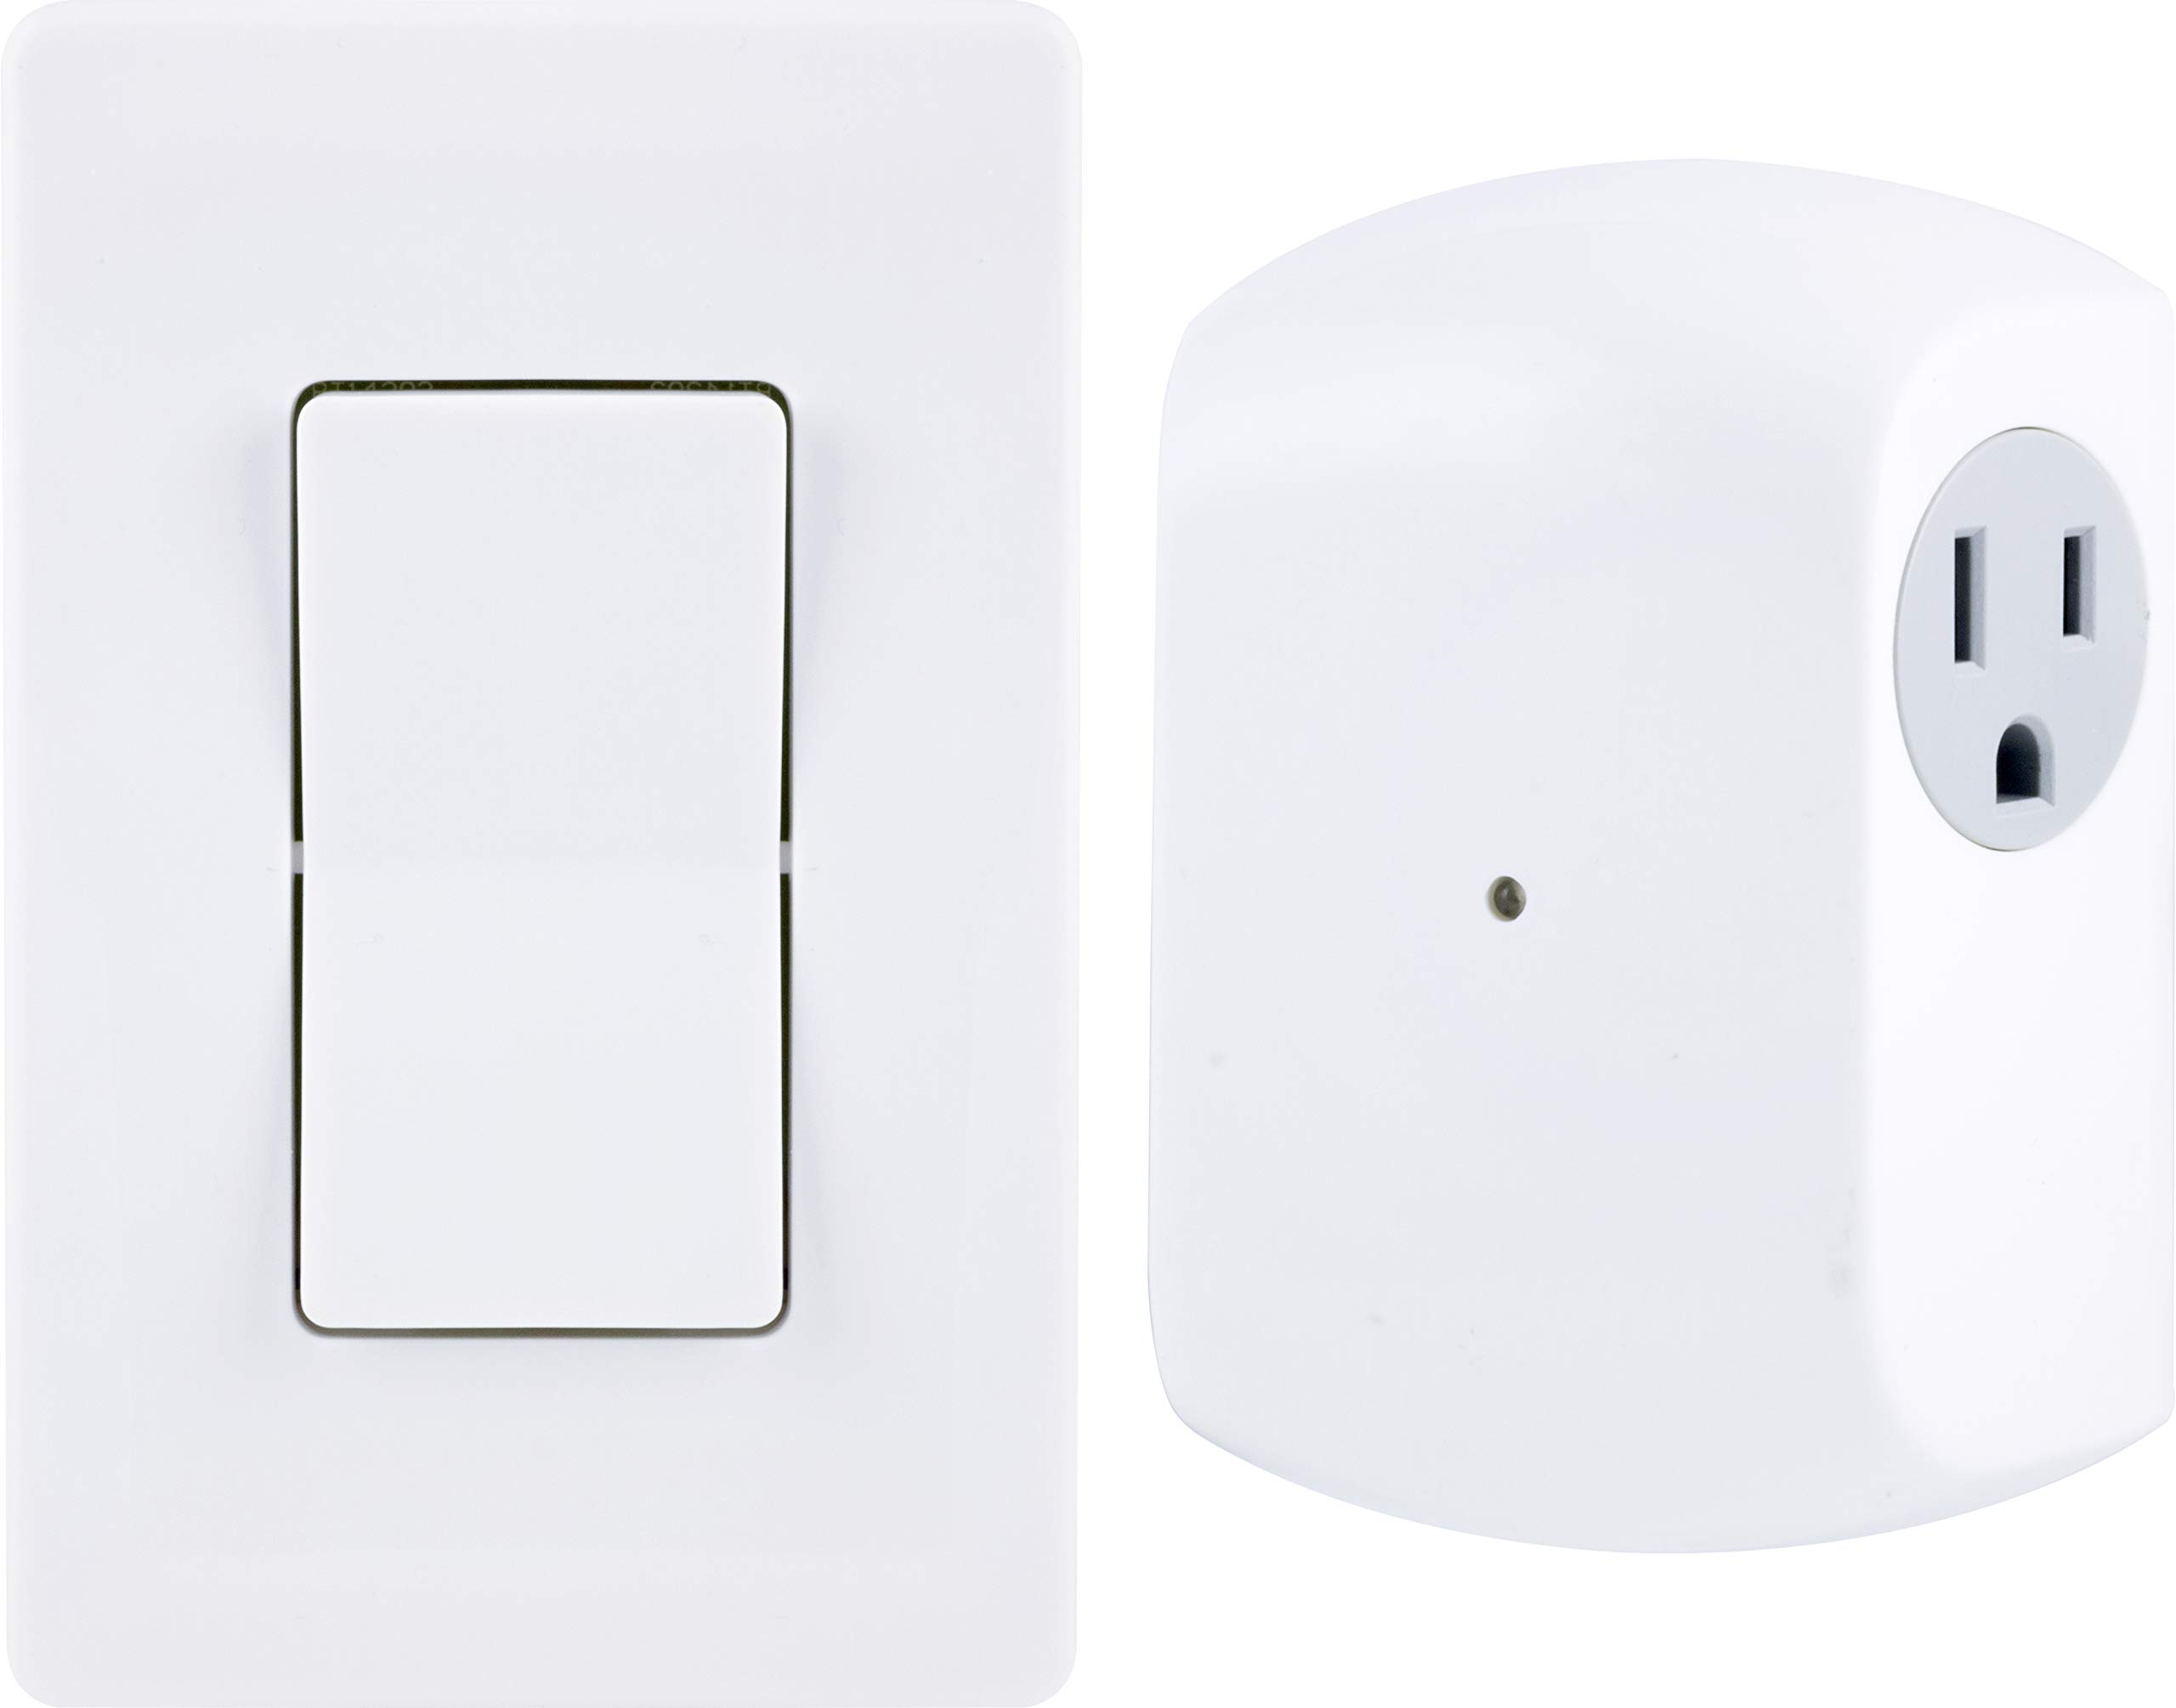 GE Wireless Remote Wall Switch Control, No Wiring Needed, 1 Grounded Outlet, White Paddle, Plug-in, Up to 100ft Range, Ideal for Indoor Lamps, Small Appliances, and Seasonal Lighting, 18279, Other by GE